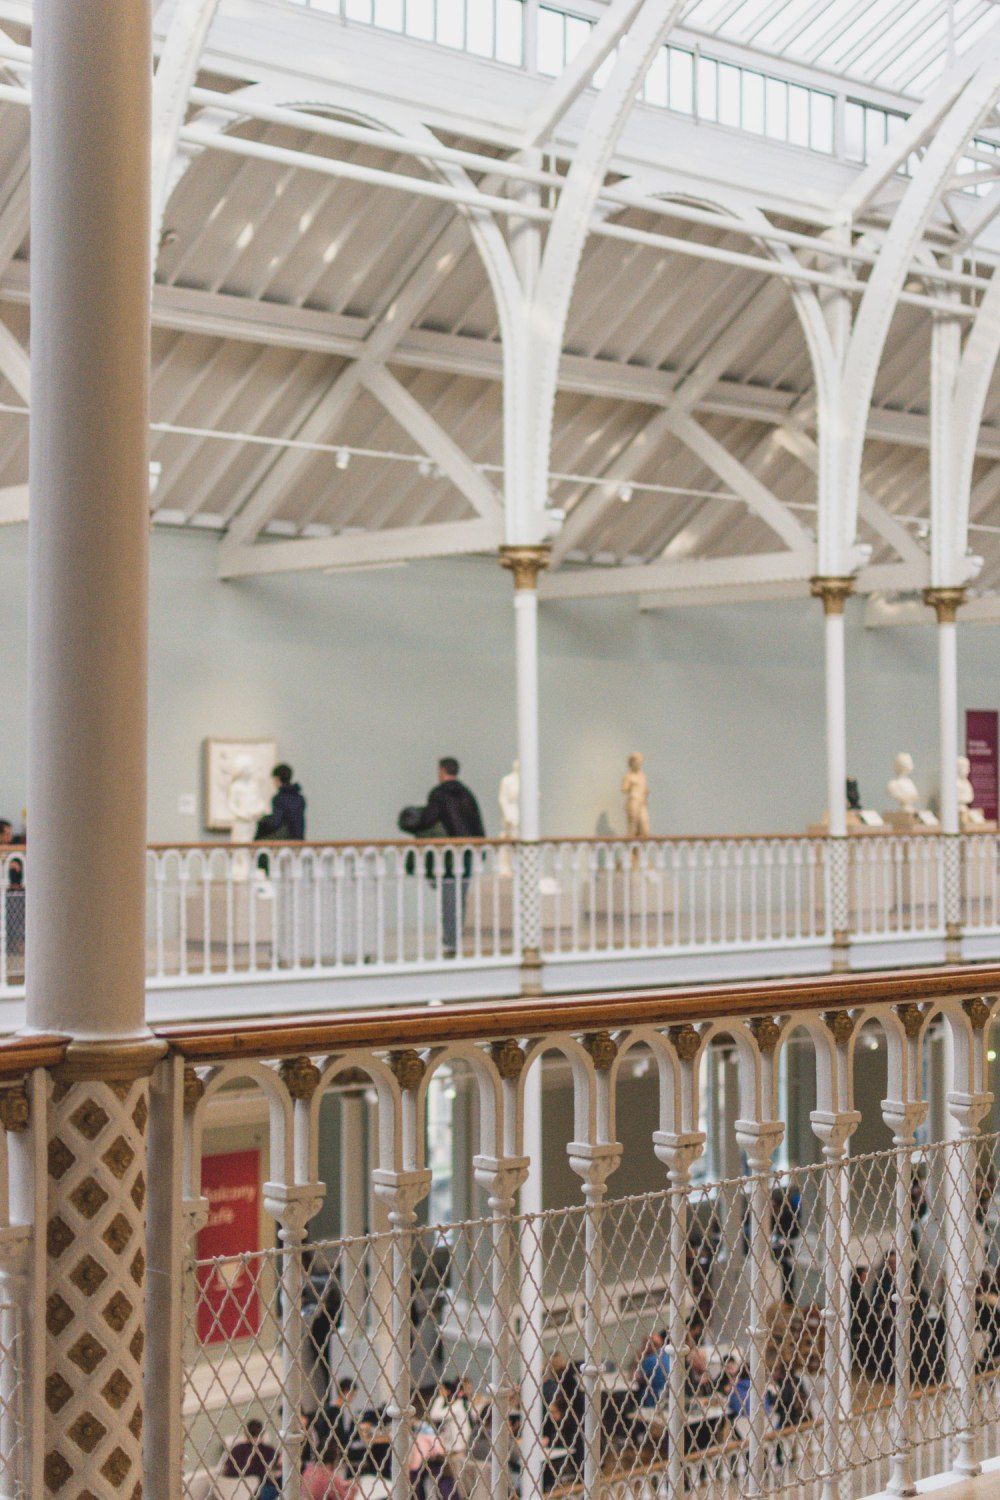 National-Museum-of-Scotland-Edinburgh (8)